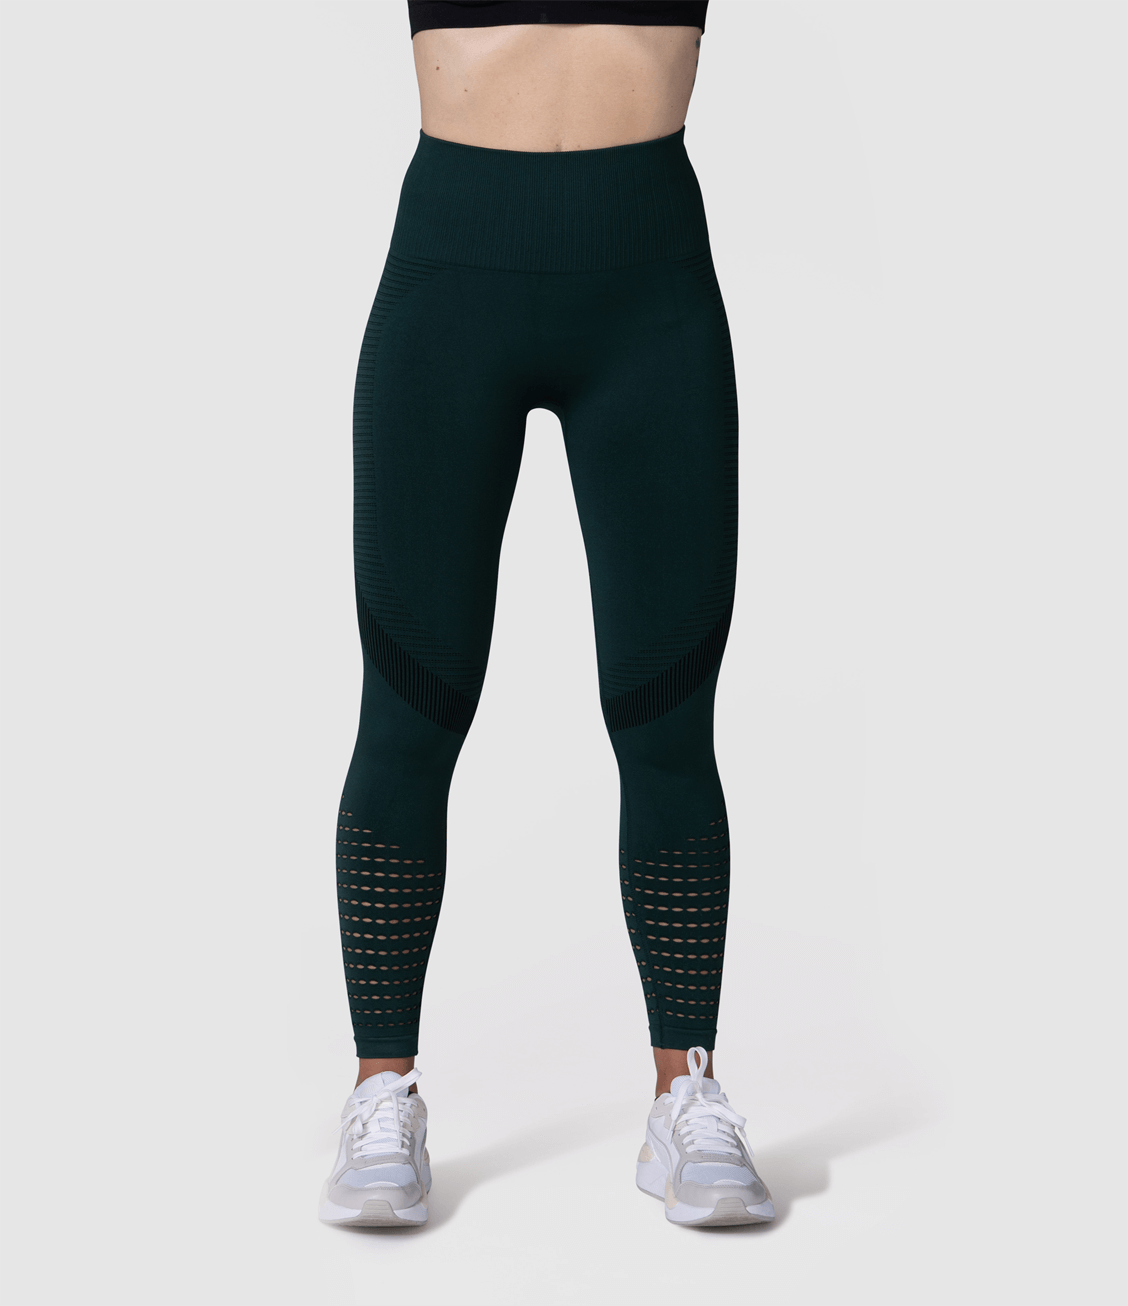 Pointer Leggings (Green)